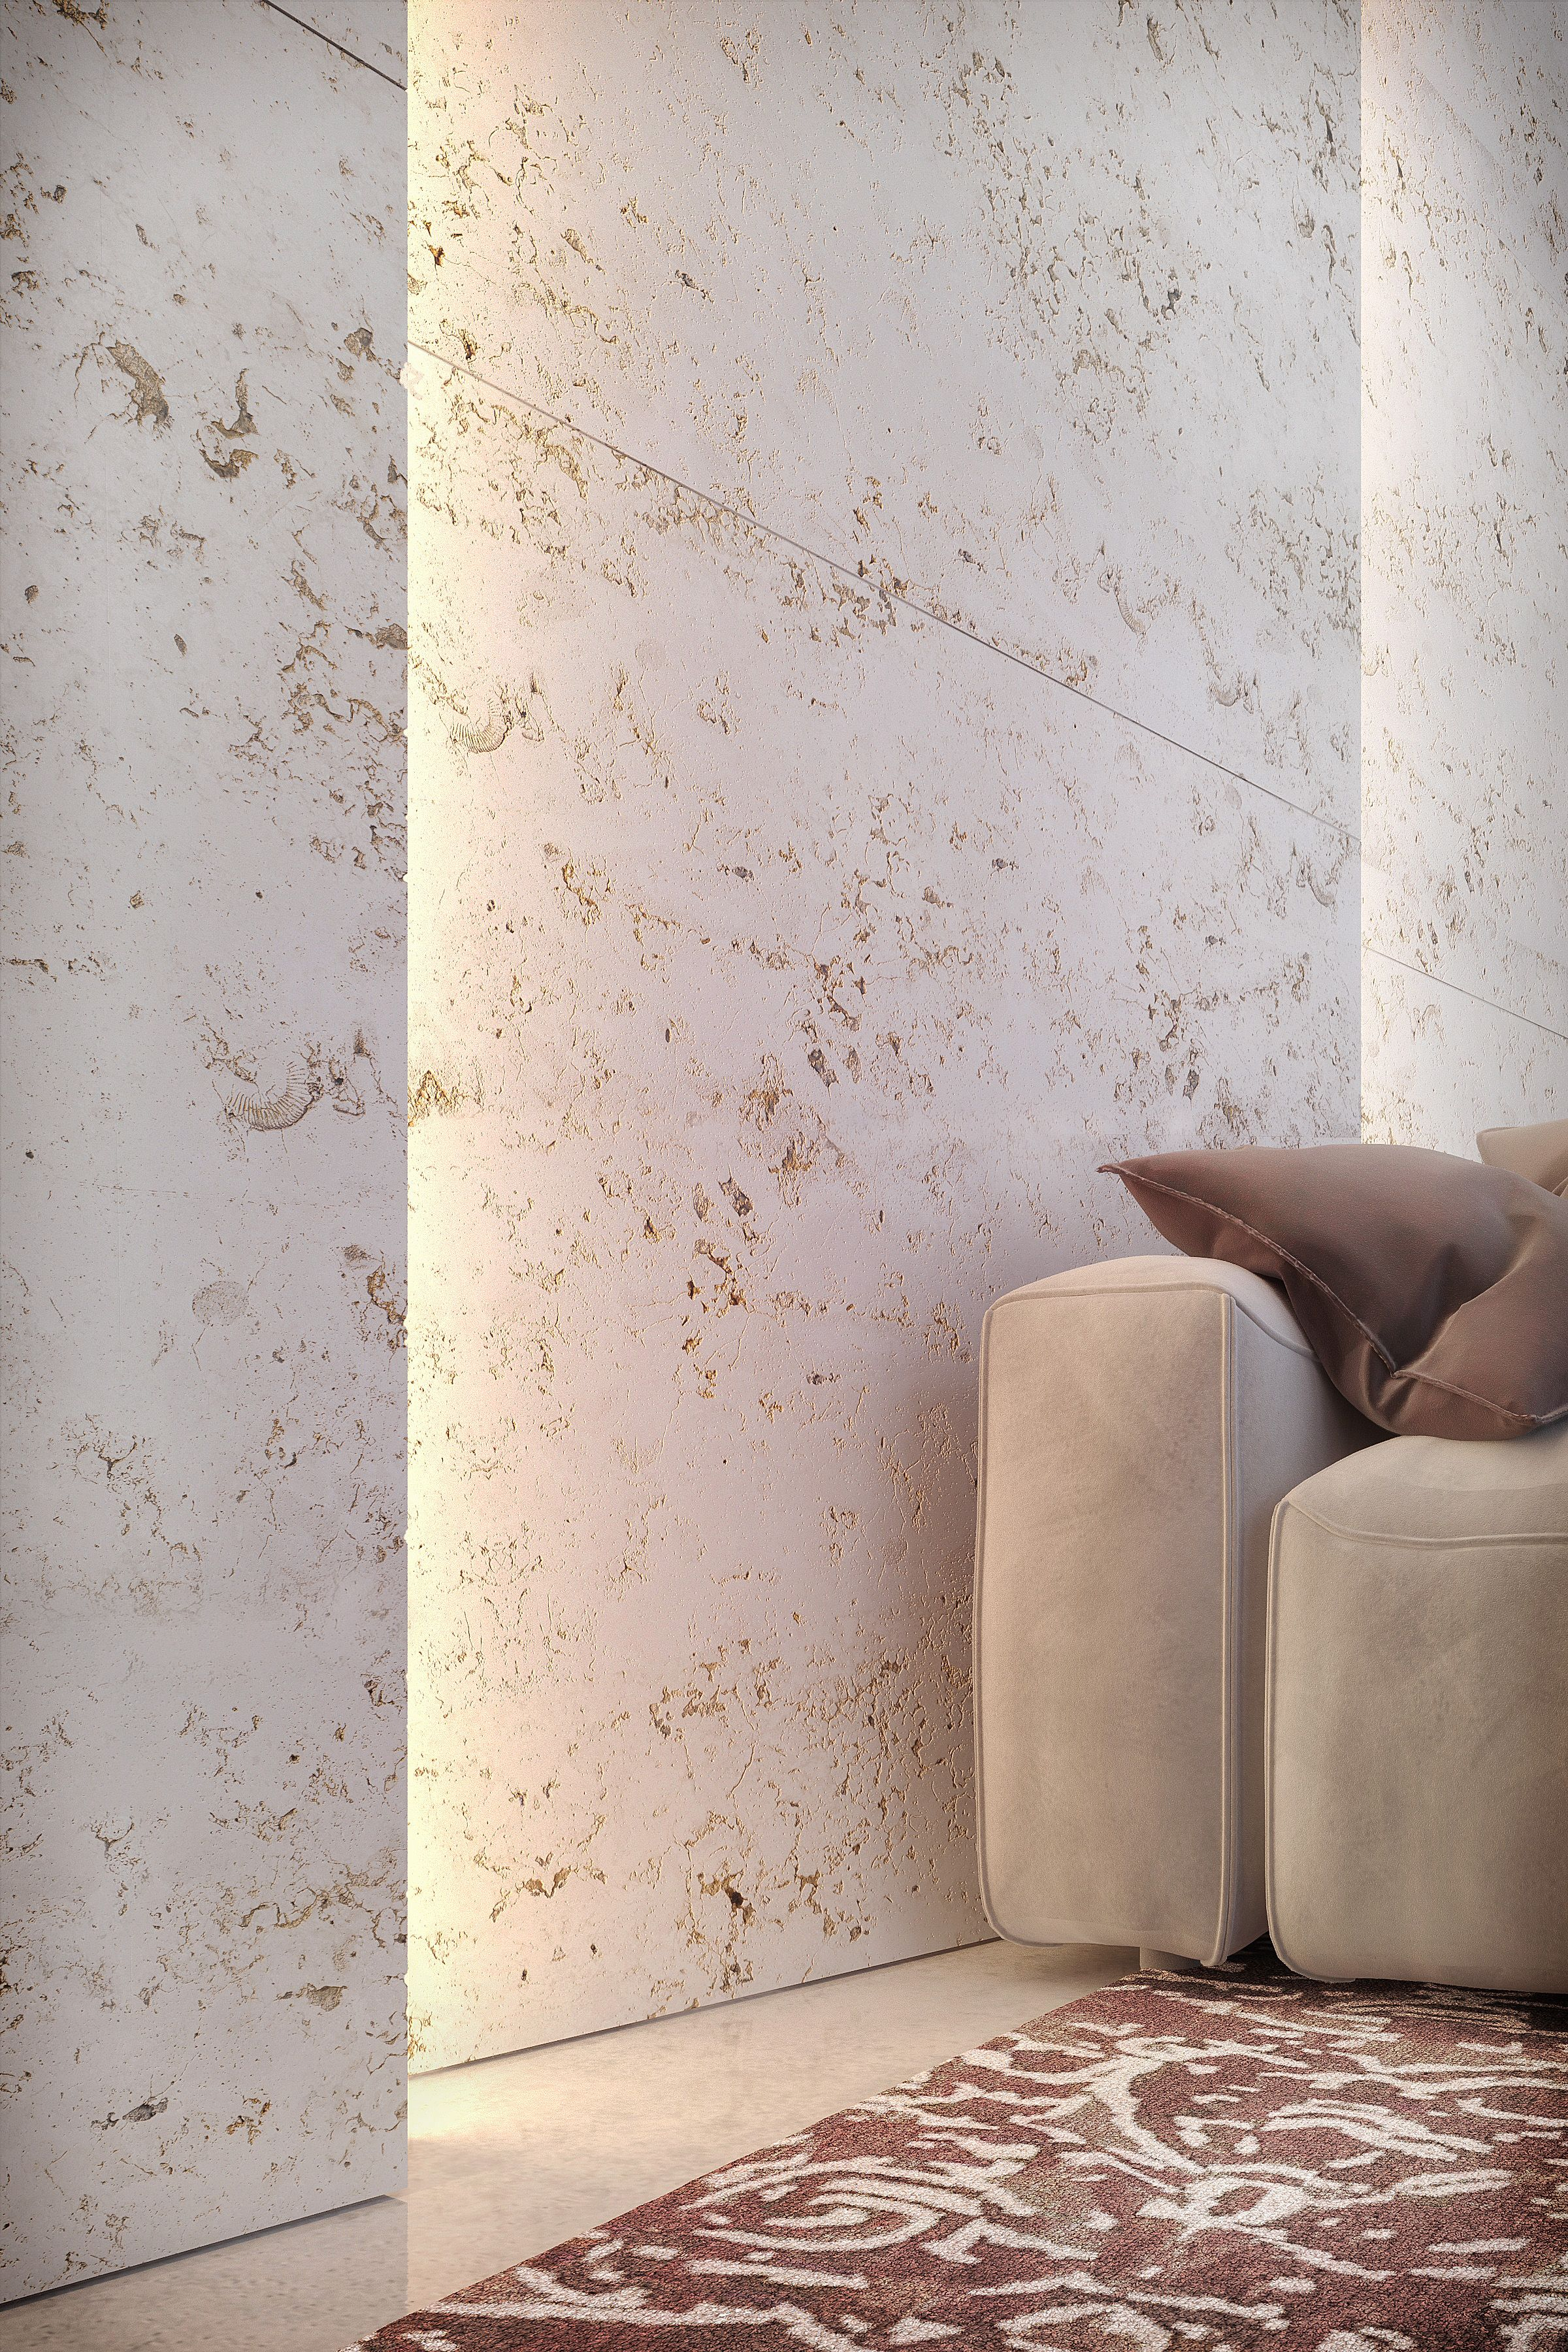 Modern Finishing Materials Unique Finishes Of Travertine Slabs